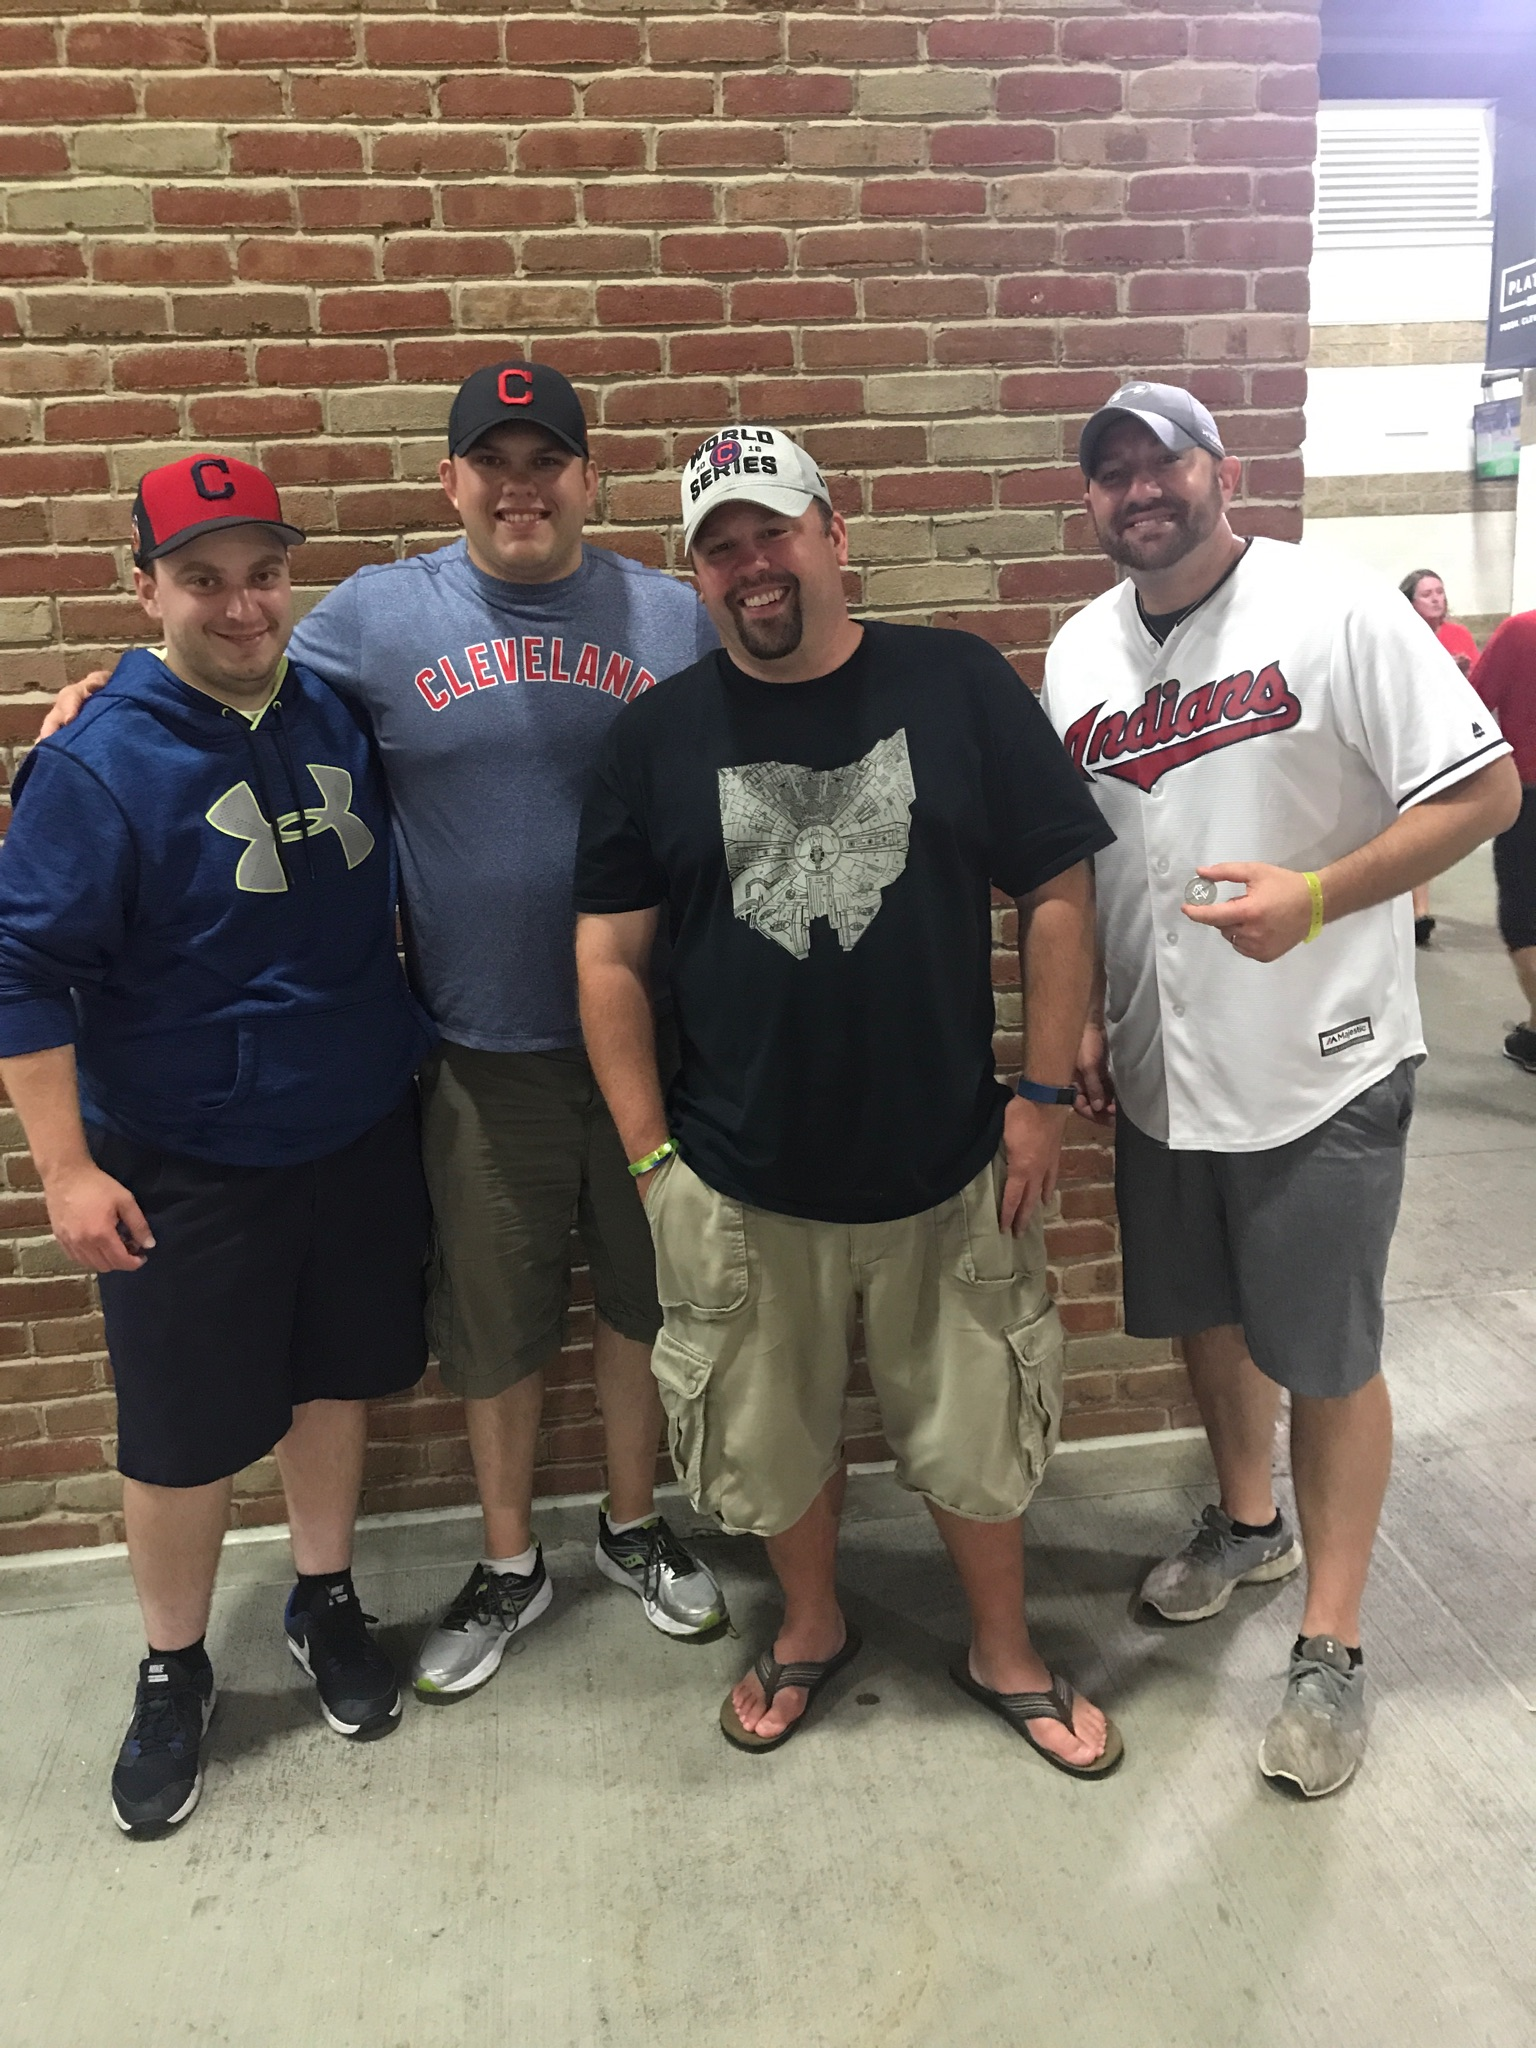 Photo of Ralphie51, Steve1357, Chewie and BillW21 in Cleveland